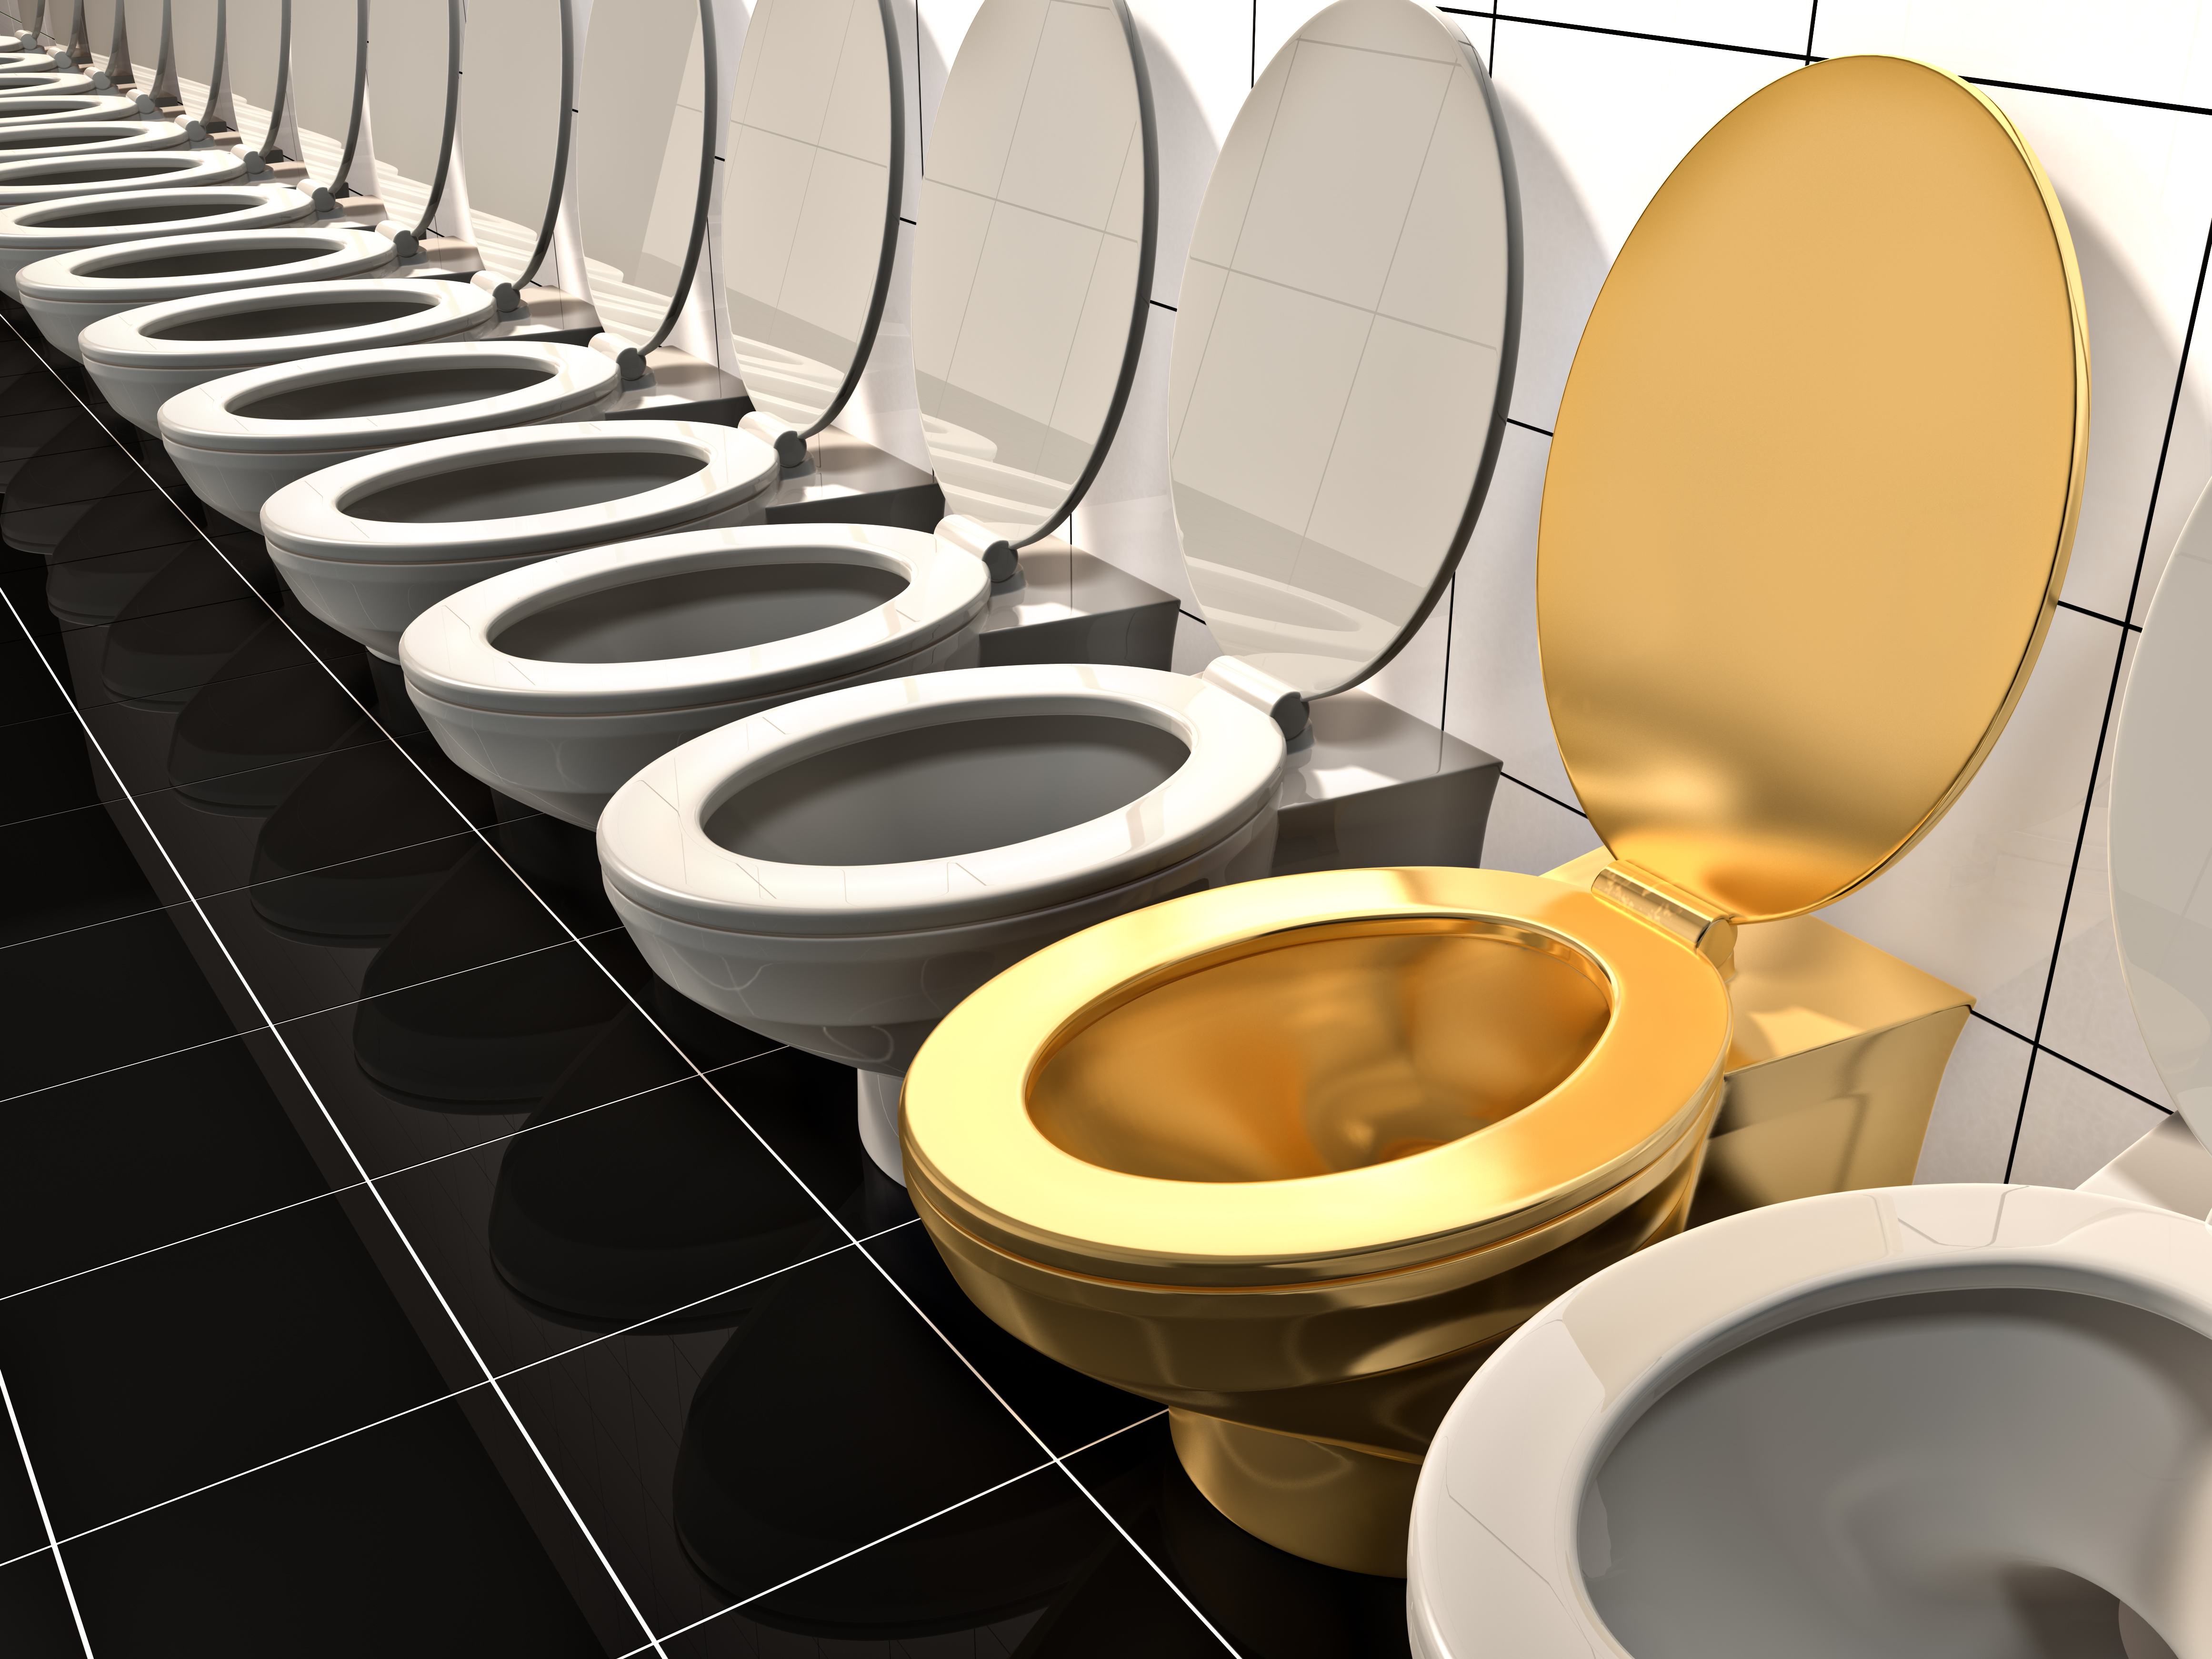 Would You Use An 18 Karat Gold Toilet What If It Was As